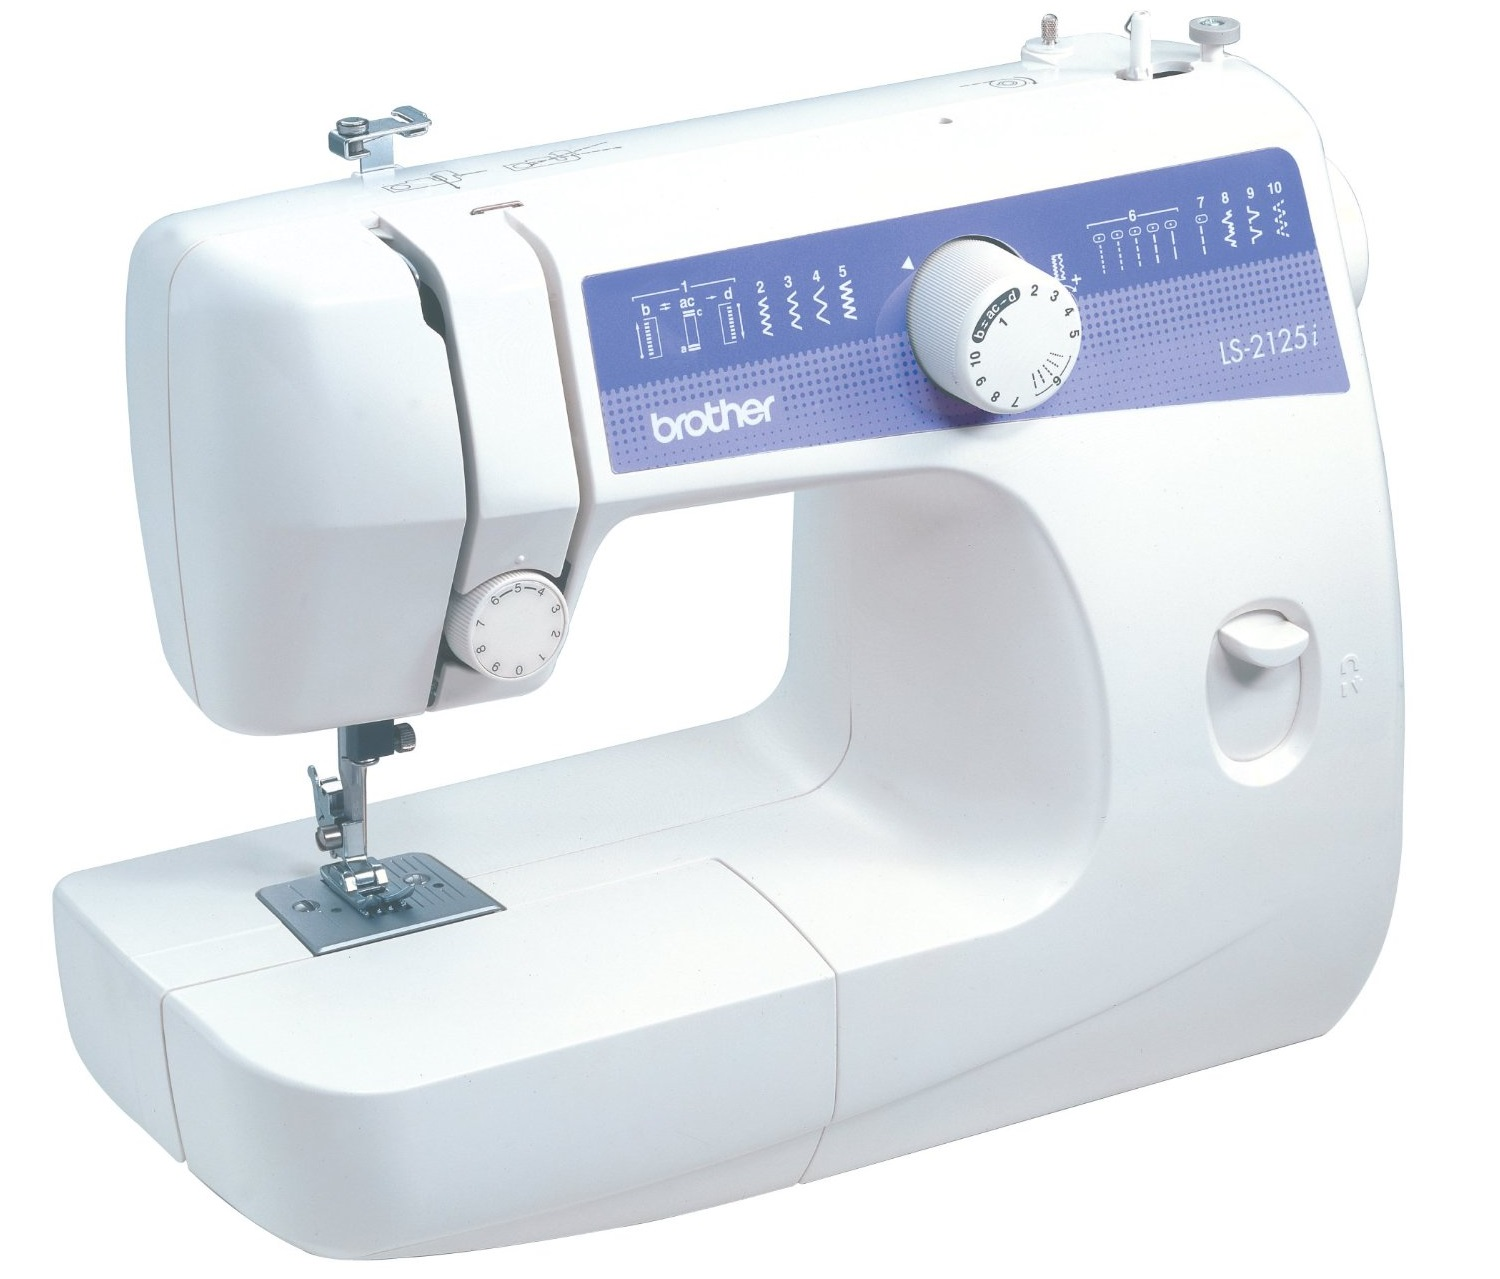 Brother LS2125i Sewing Machine Review